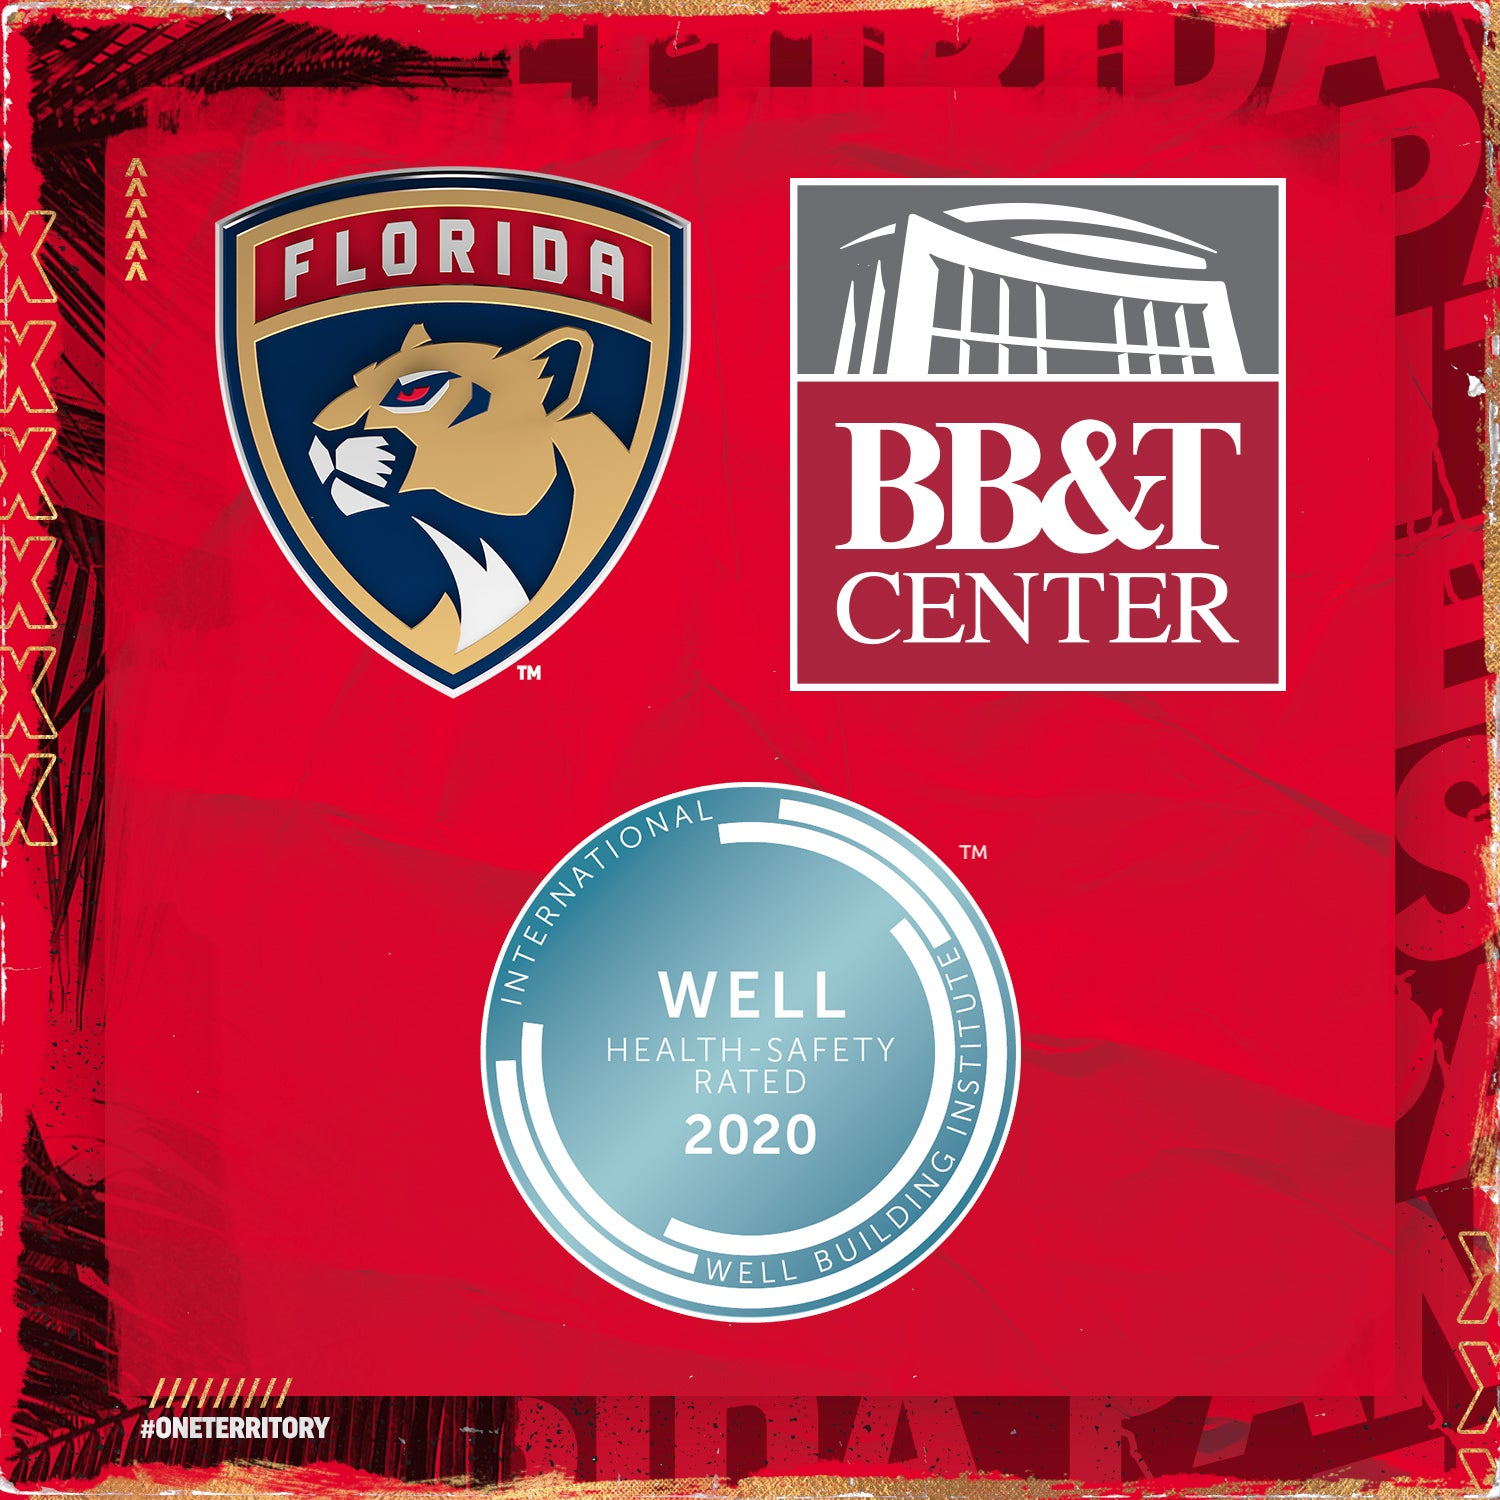 More Info for Florida Panthers' FLA Live Arena Becomes First NHL Arena to Achieve the WELL Health-Safety Rating